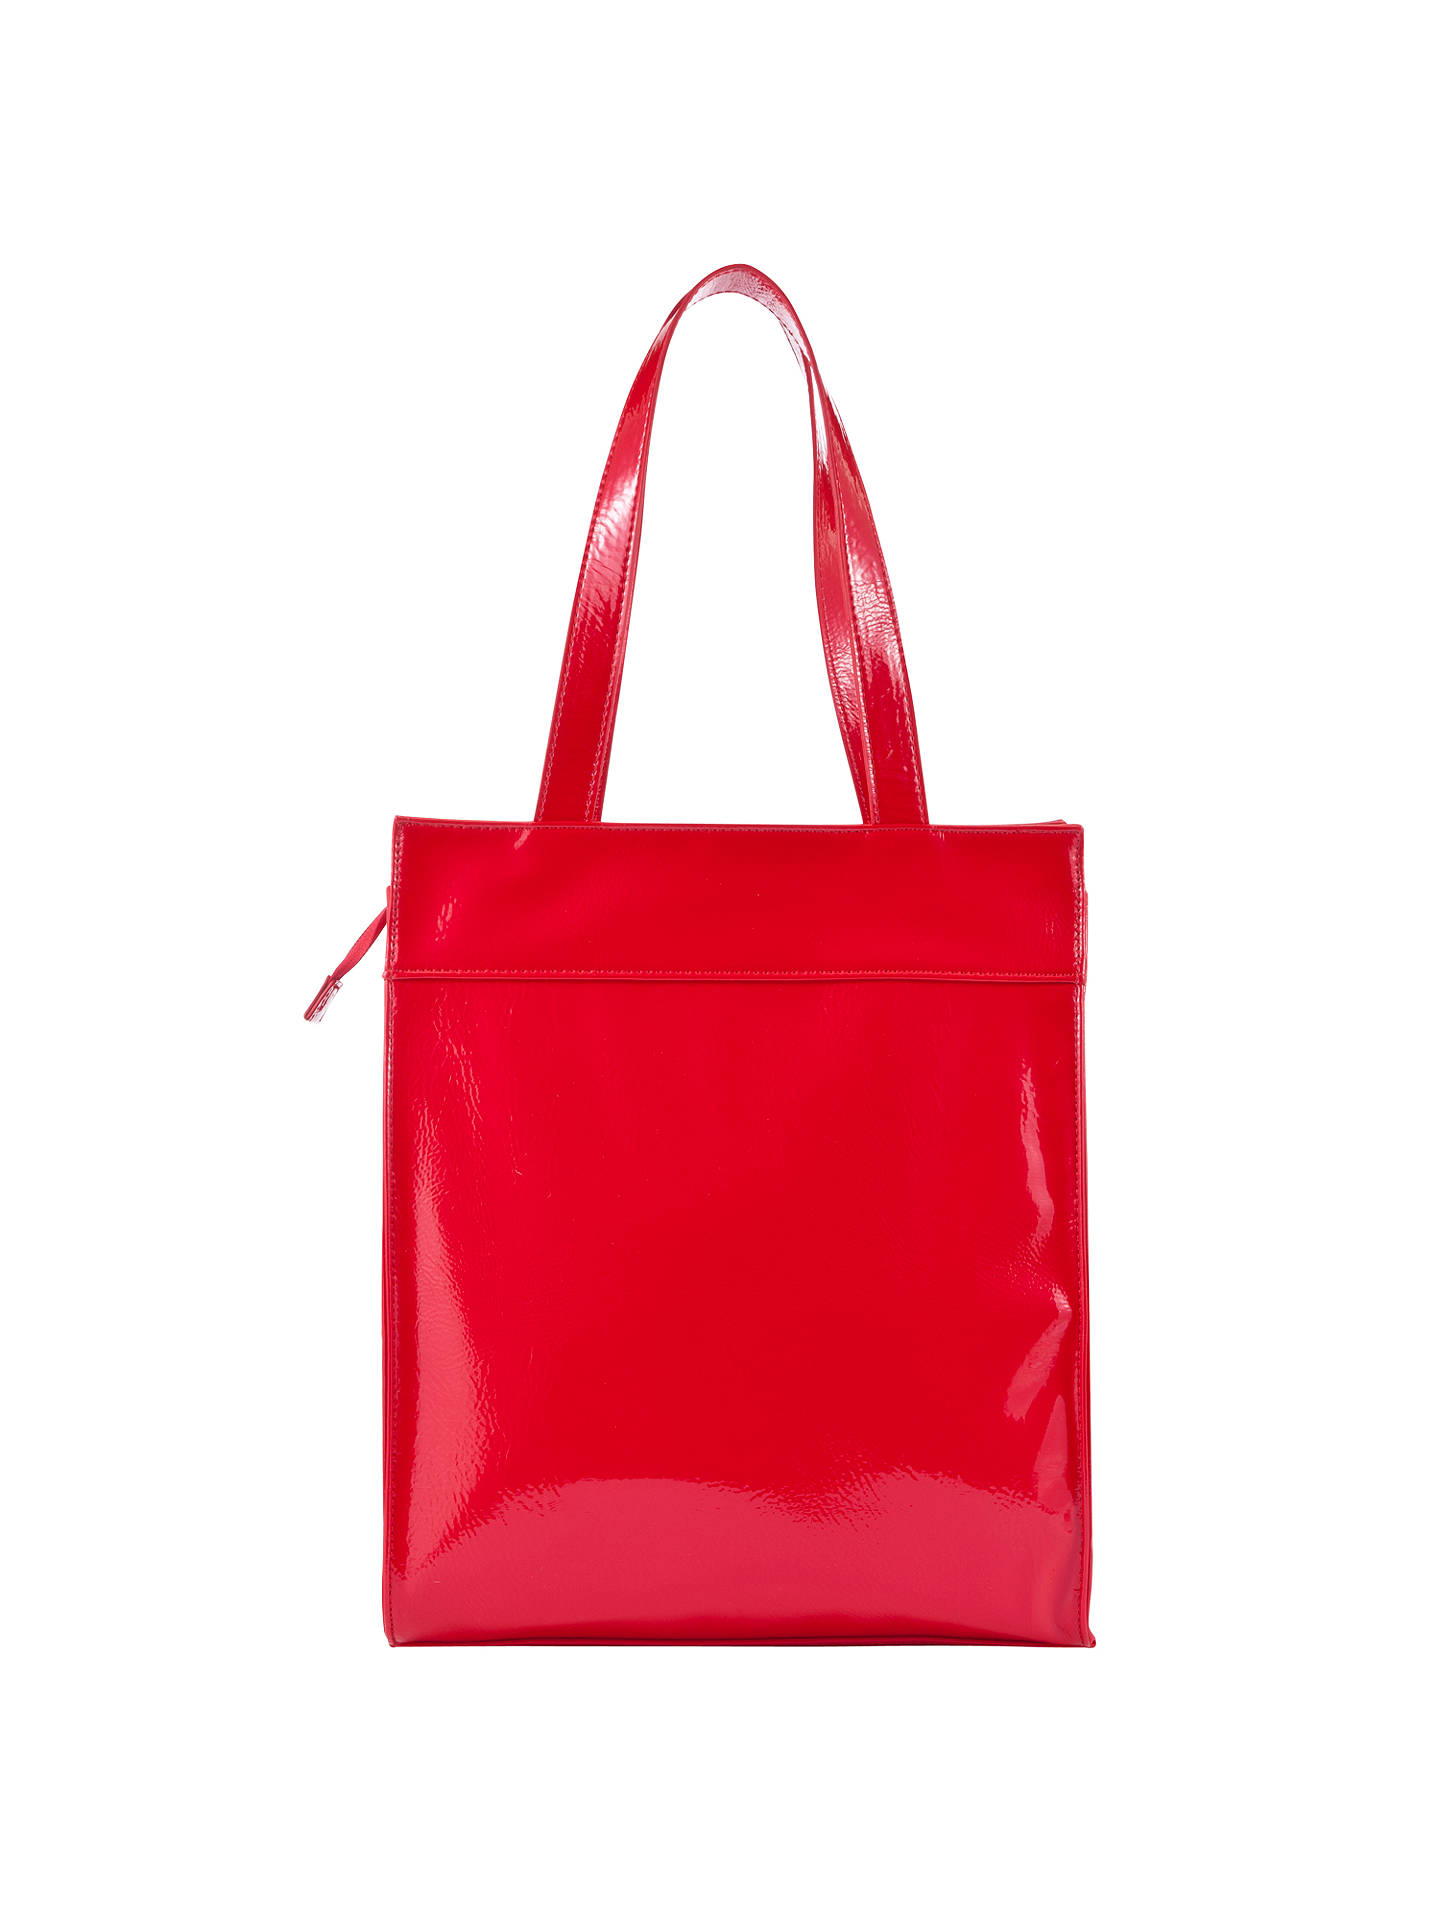 Buy John Lewis Shapes Zippy Tote Bag, Red Online at johnlewis.com